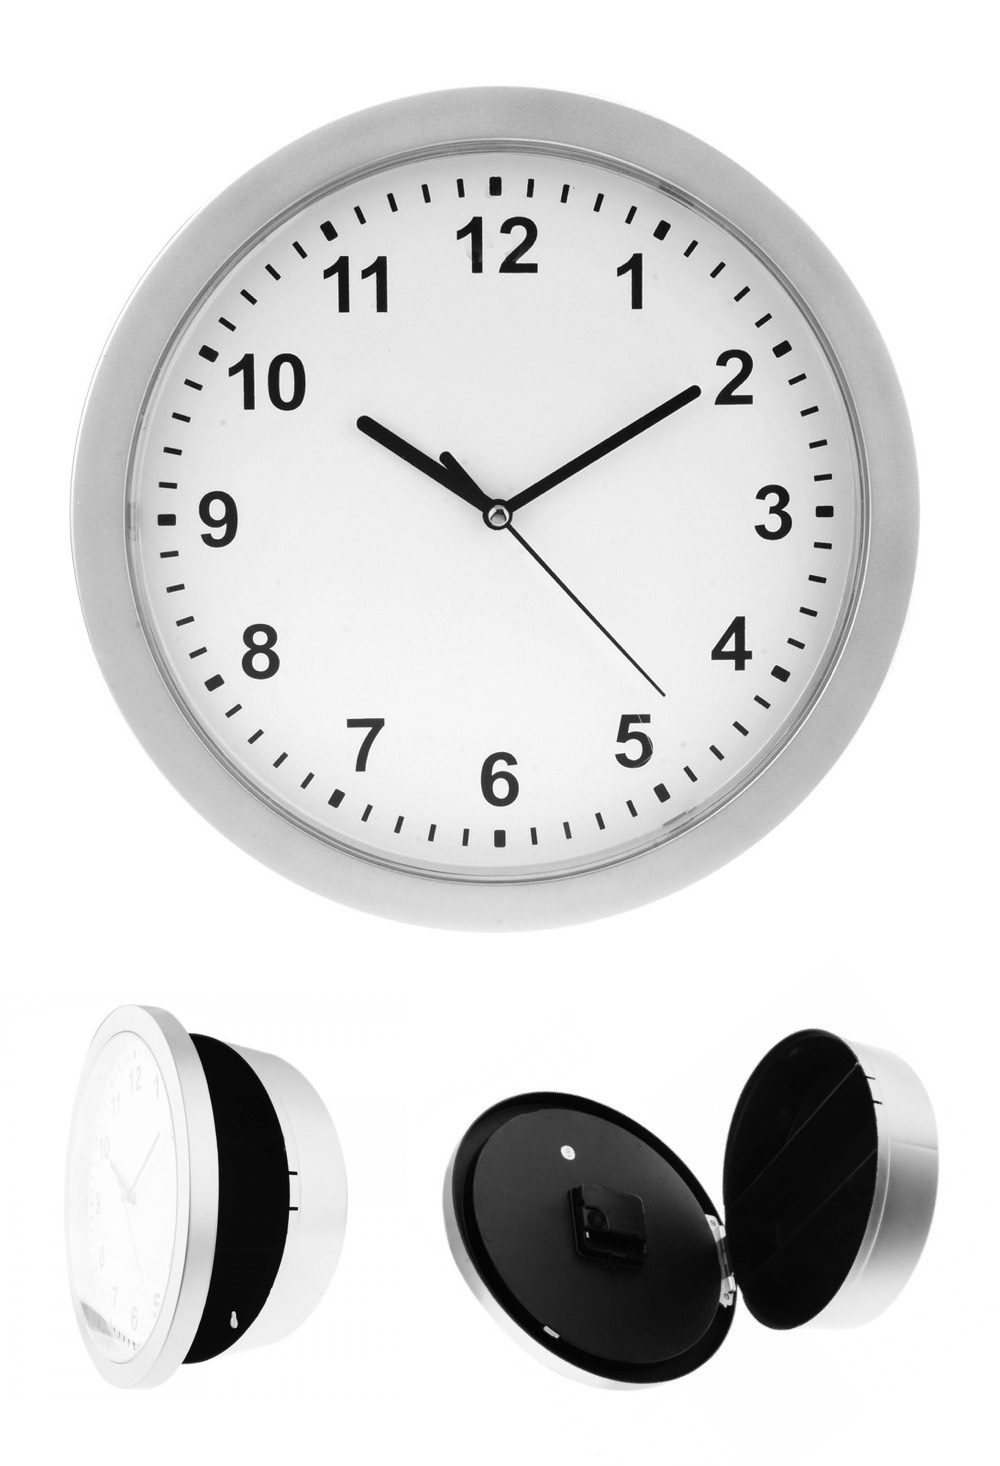 simple wall clock   simple wall clock  zazzlesimple wall  - simple wall clock simple wall clock interior design ideas